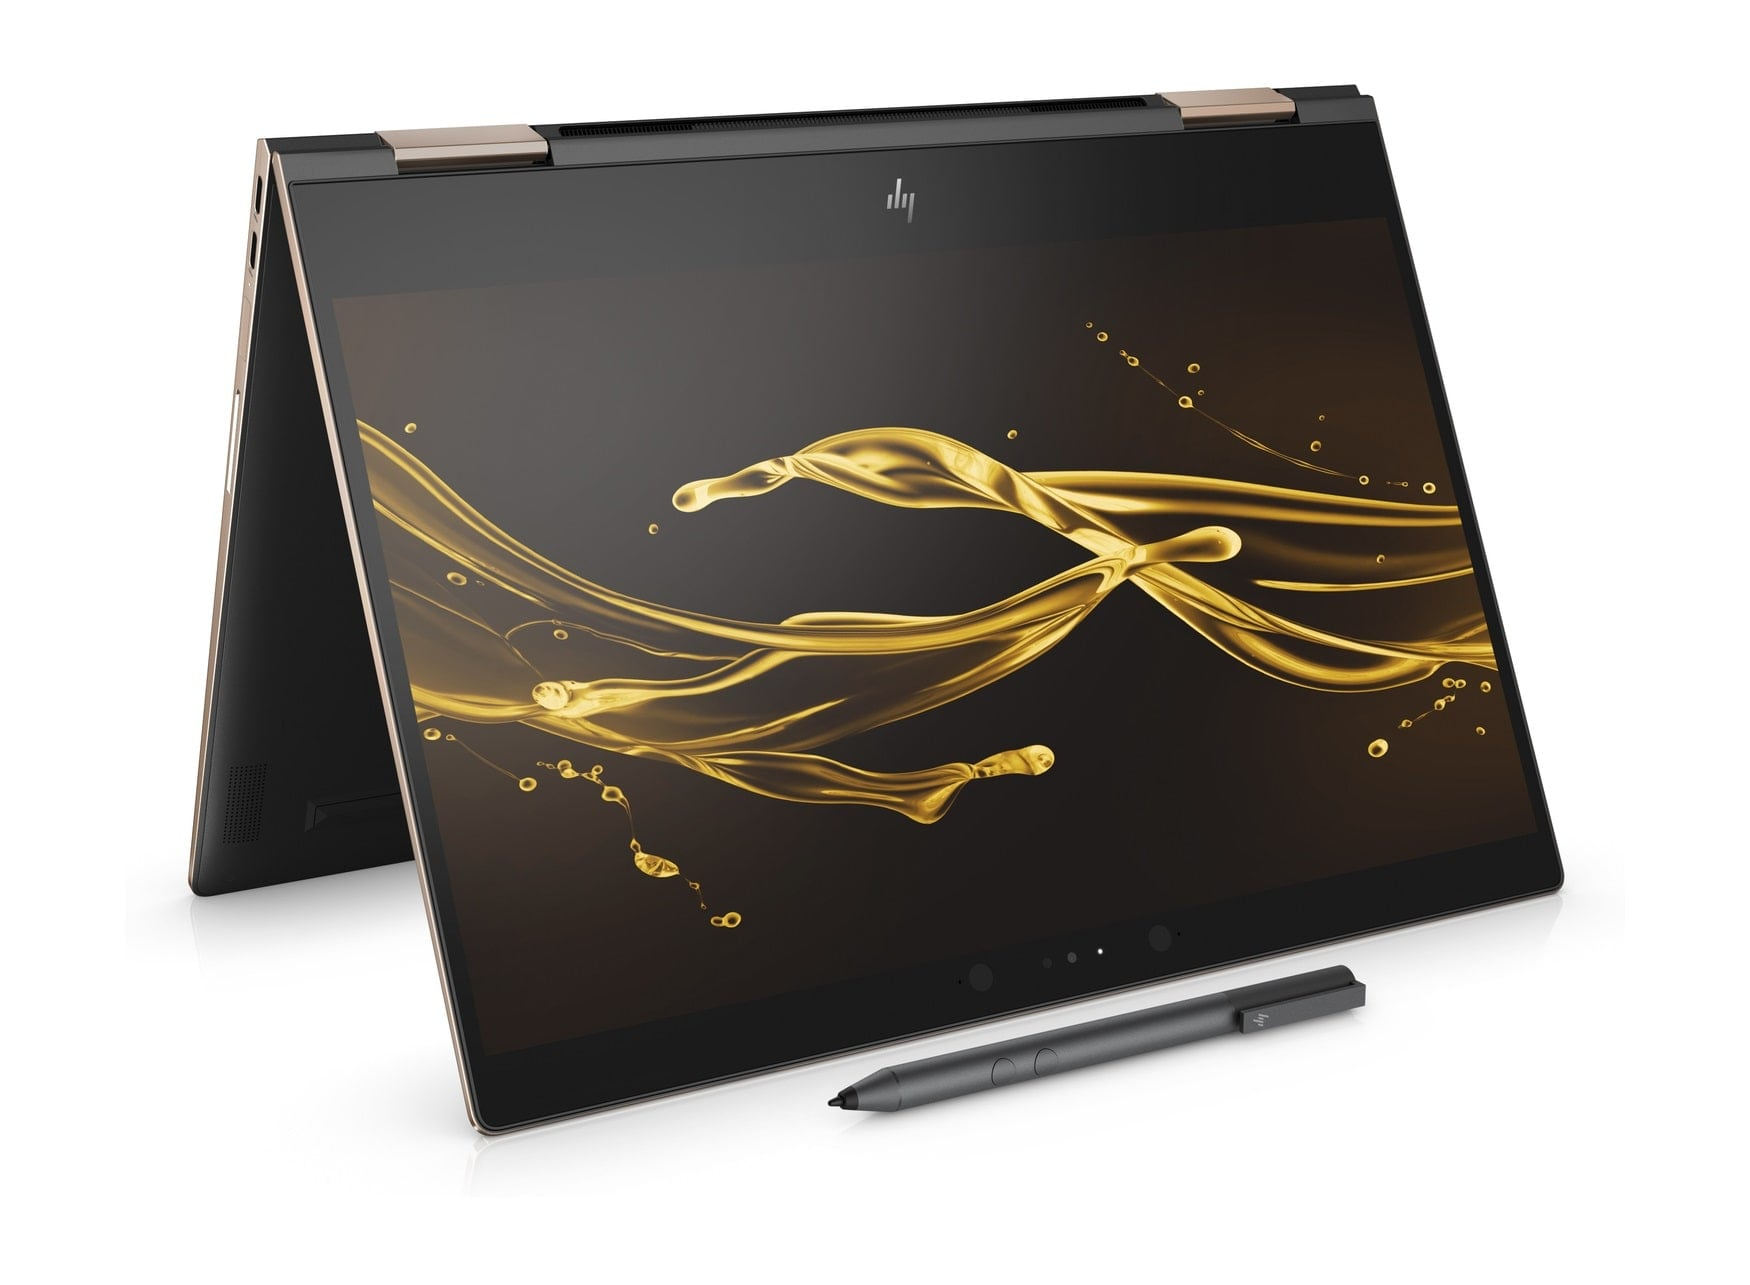 HP Spectre x360 13t 8th Generation Ci7 Laptop Price in Pakistan